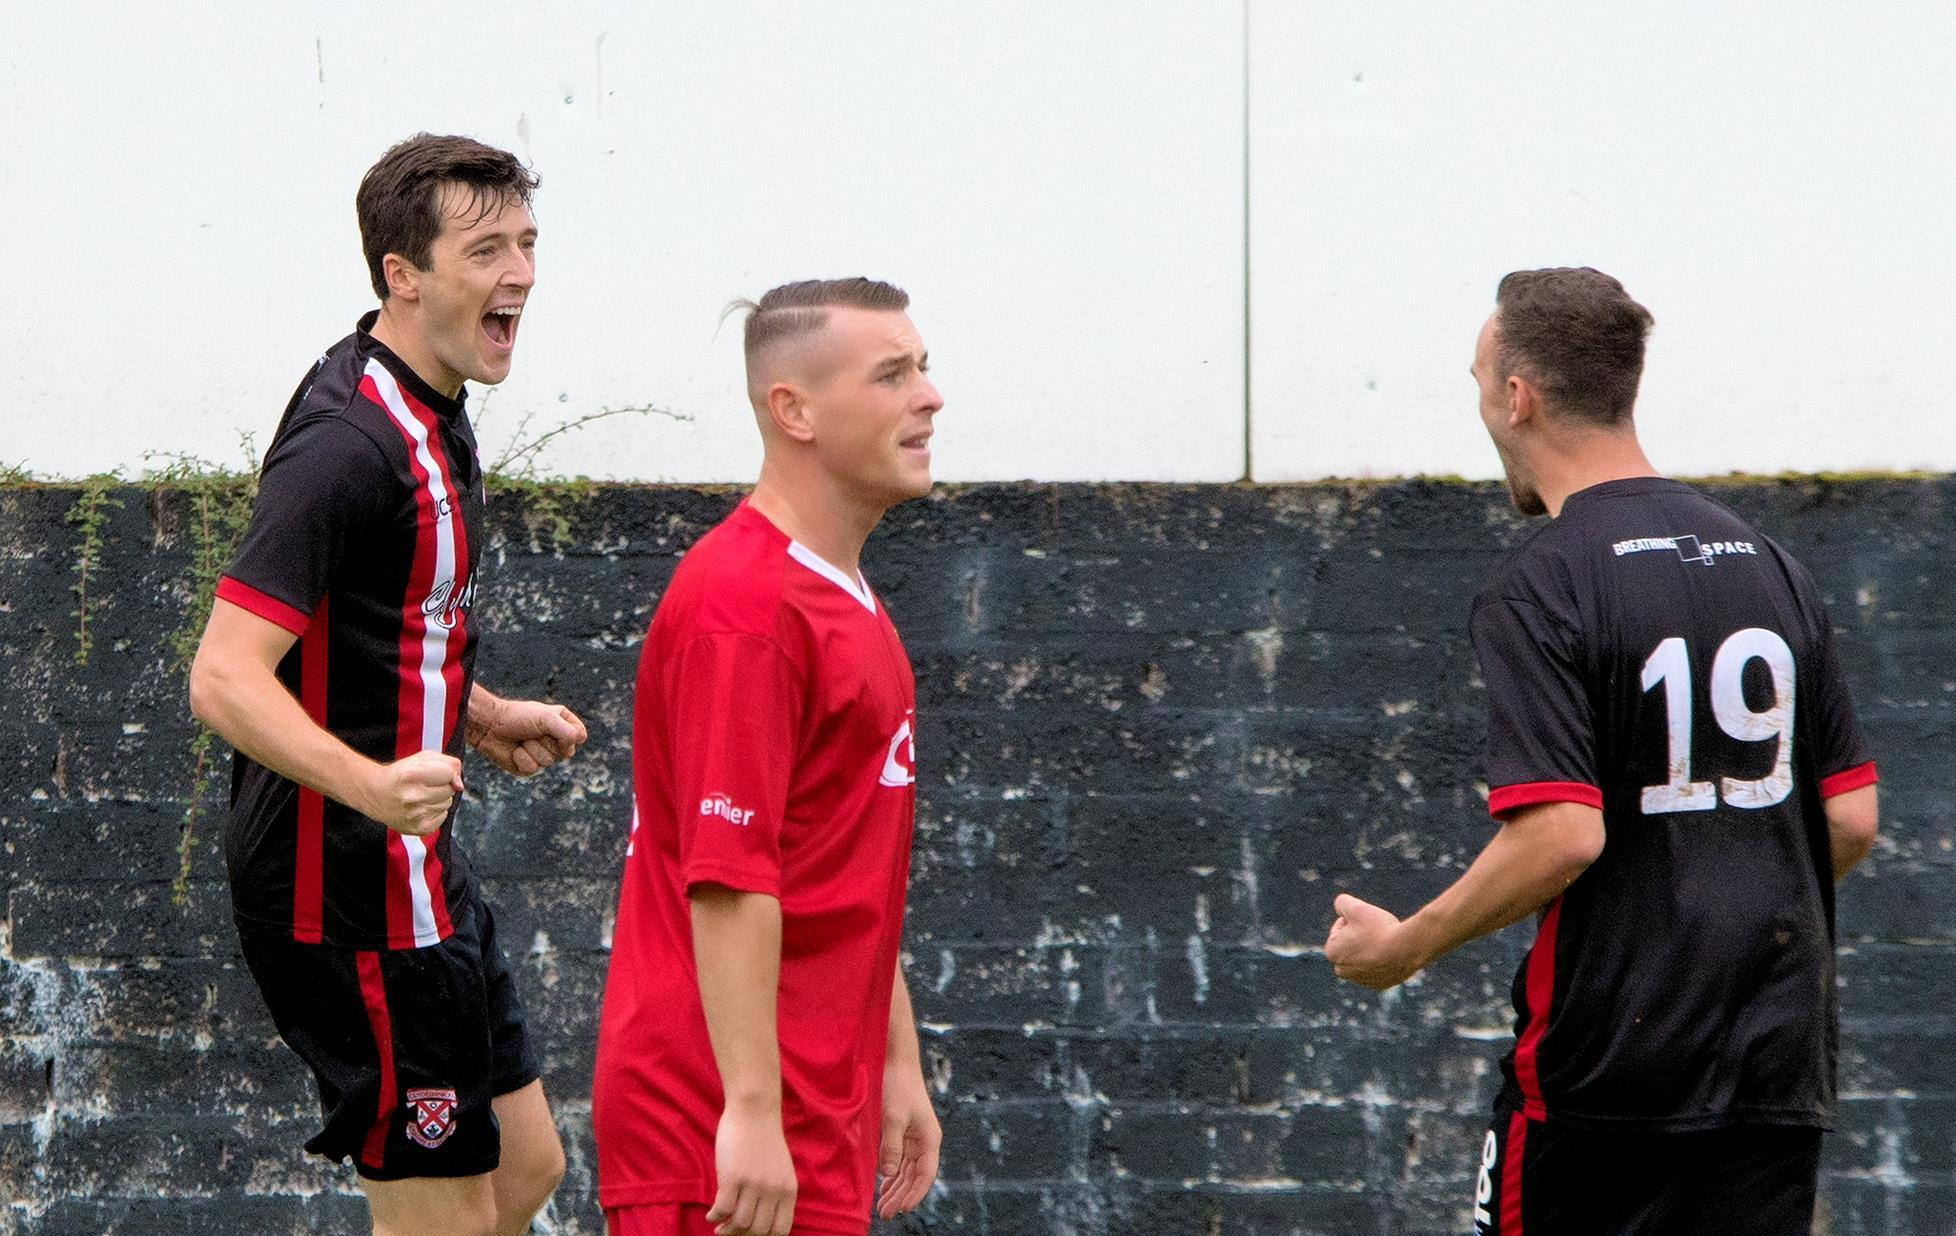 Little celebrates giving Bankies an early lead           Photo: Stevie Doogan